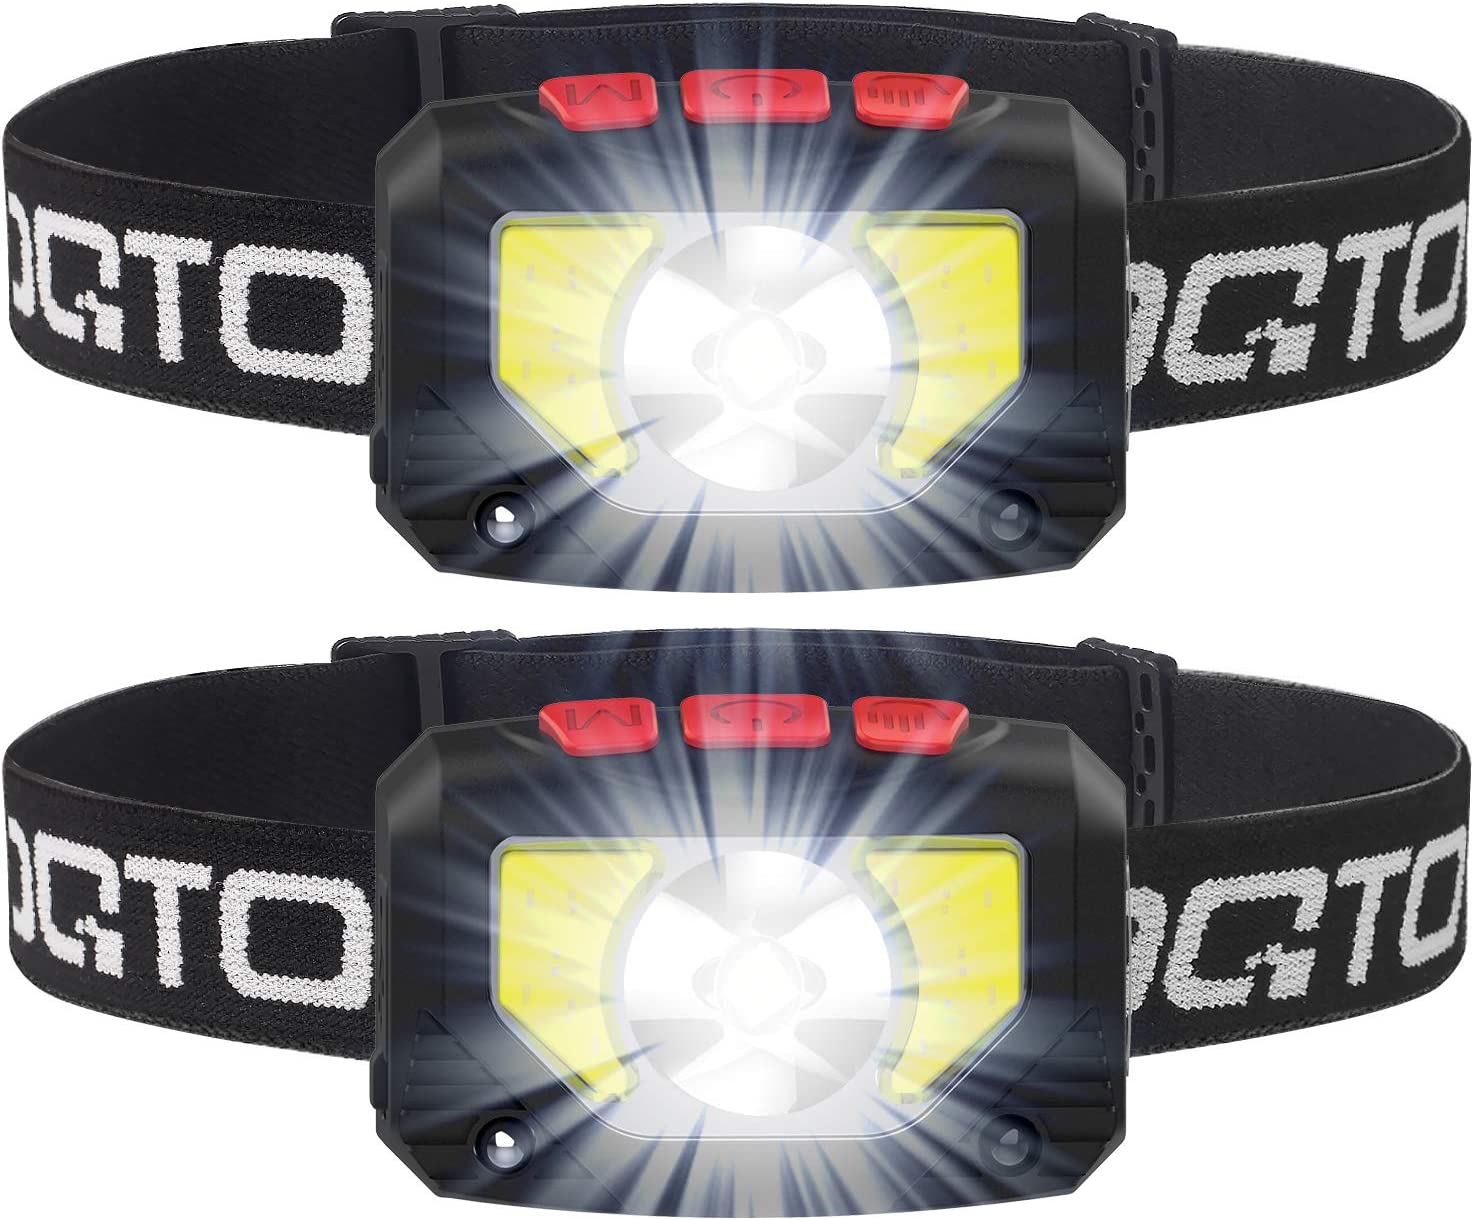 Led Headlamp USB Rechargeable/&Battery Powered,1000lm 11modes Headlamp Flashlight with Motion Sensor,Waterproof Headlamp with Red Safety Light,Suitable for Outdoor Camping,Climbing,Fishing,Hunting